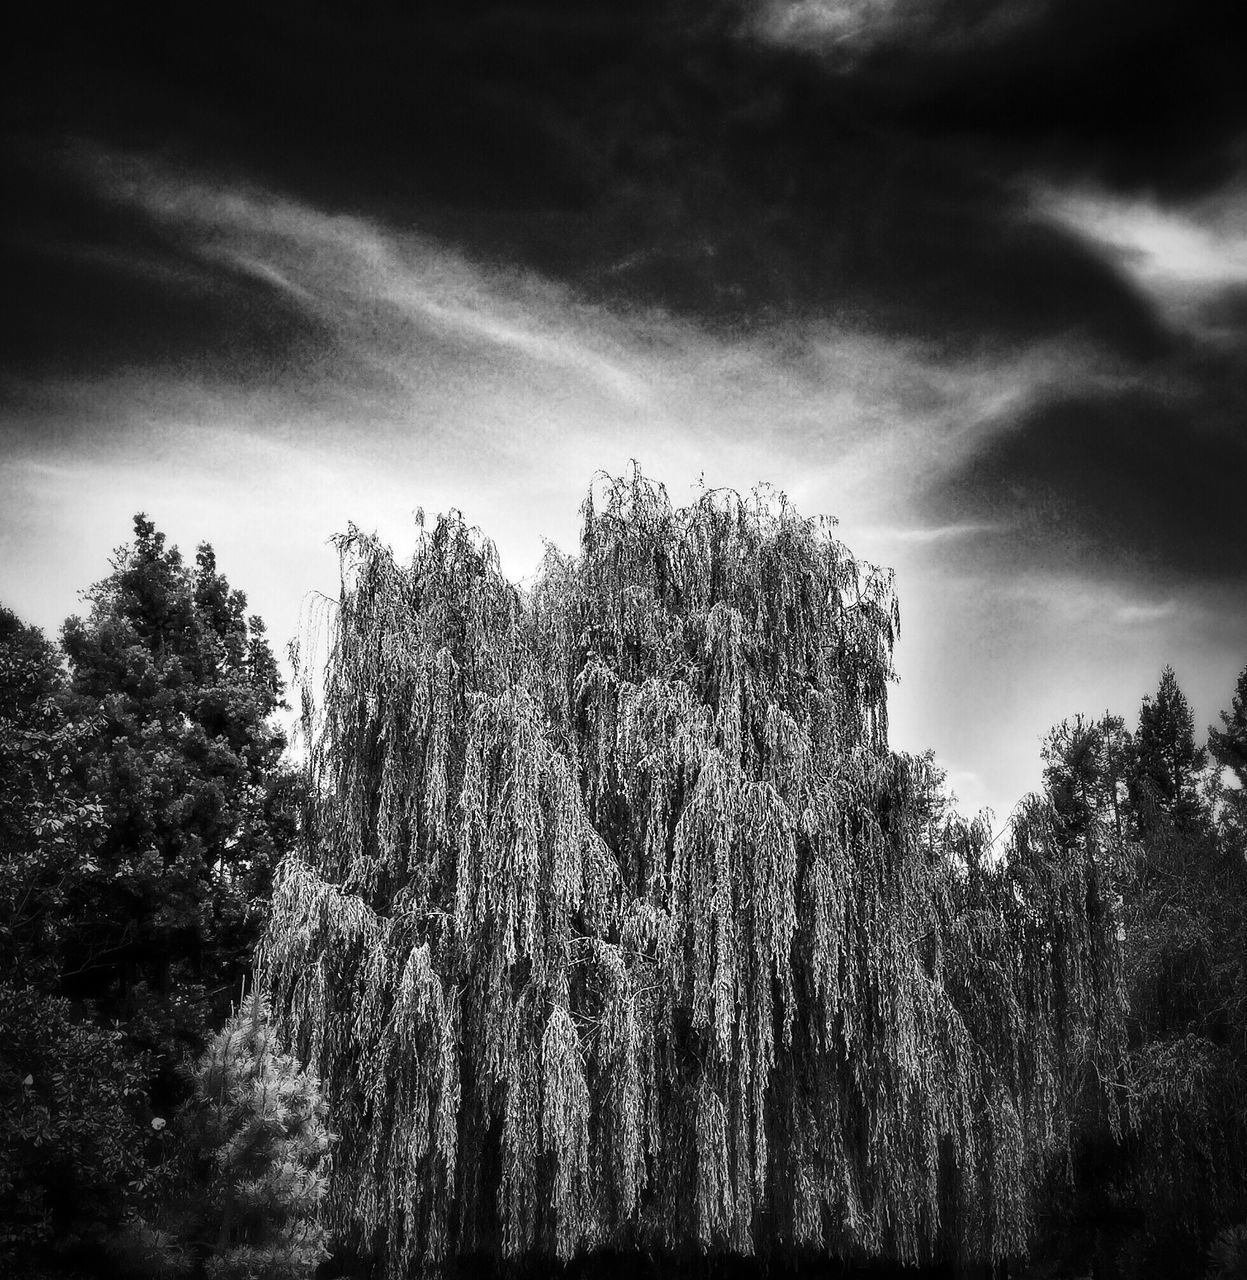 Willow tree in black and white